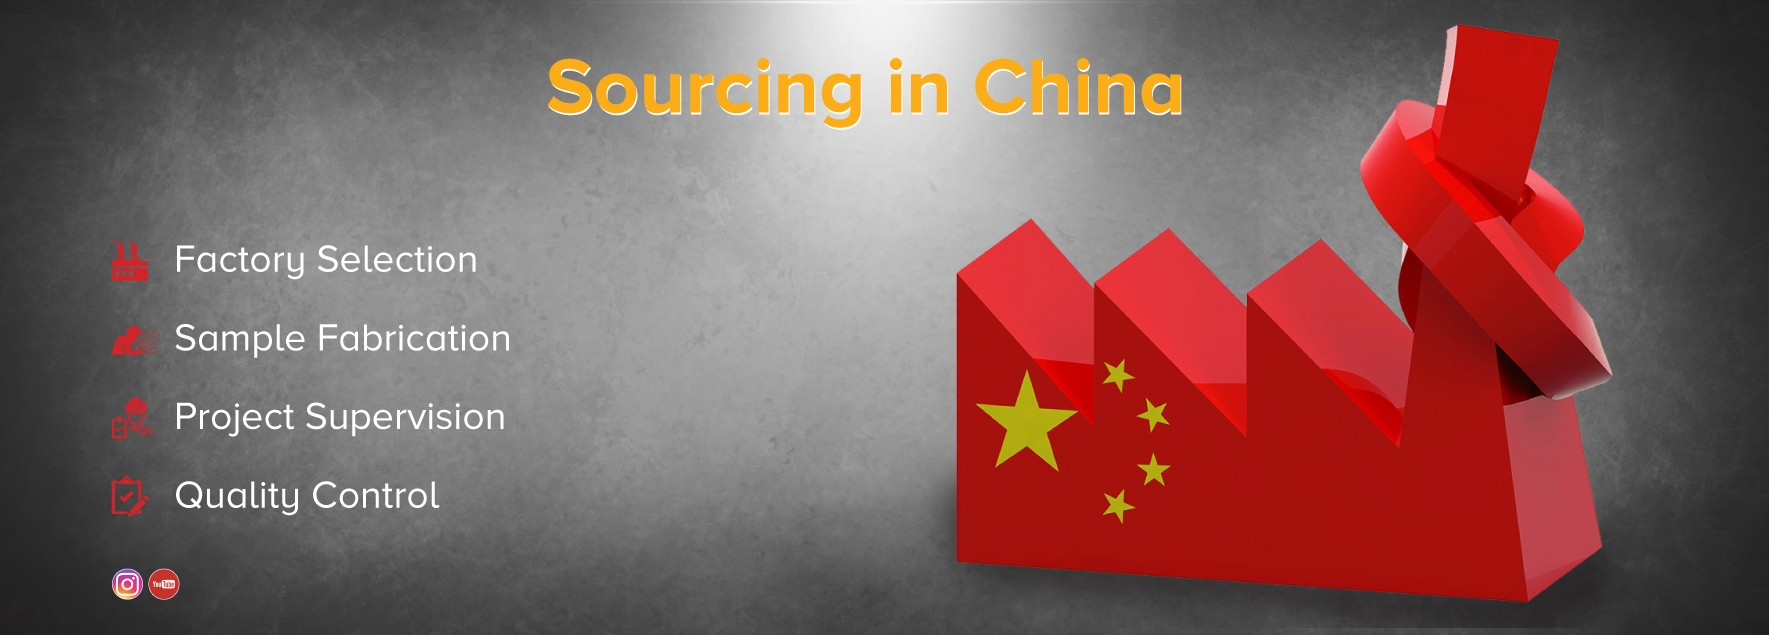 Sourcing product in China